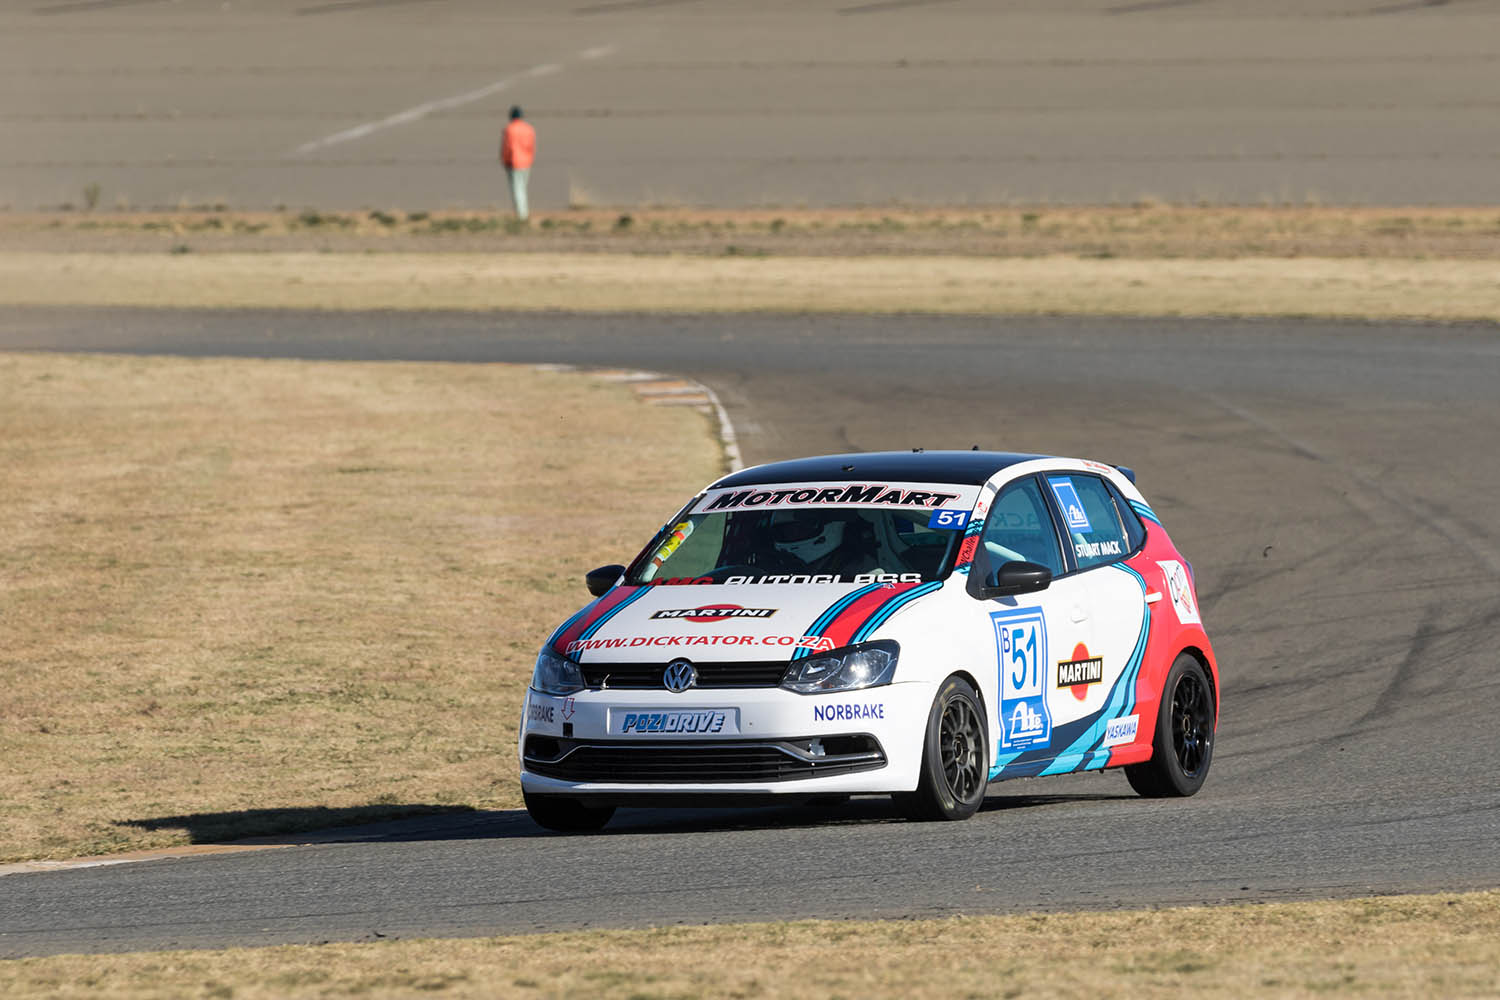 Stuart Mack took his newly acquired car to two podium finishes